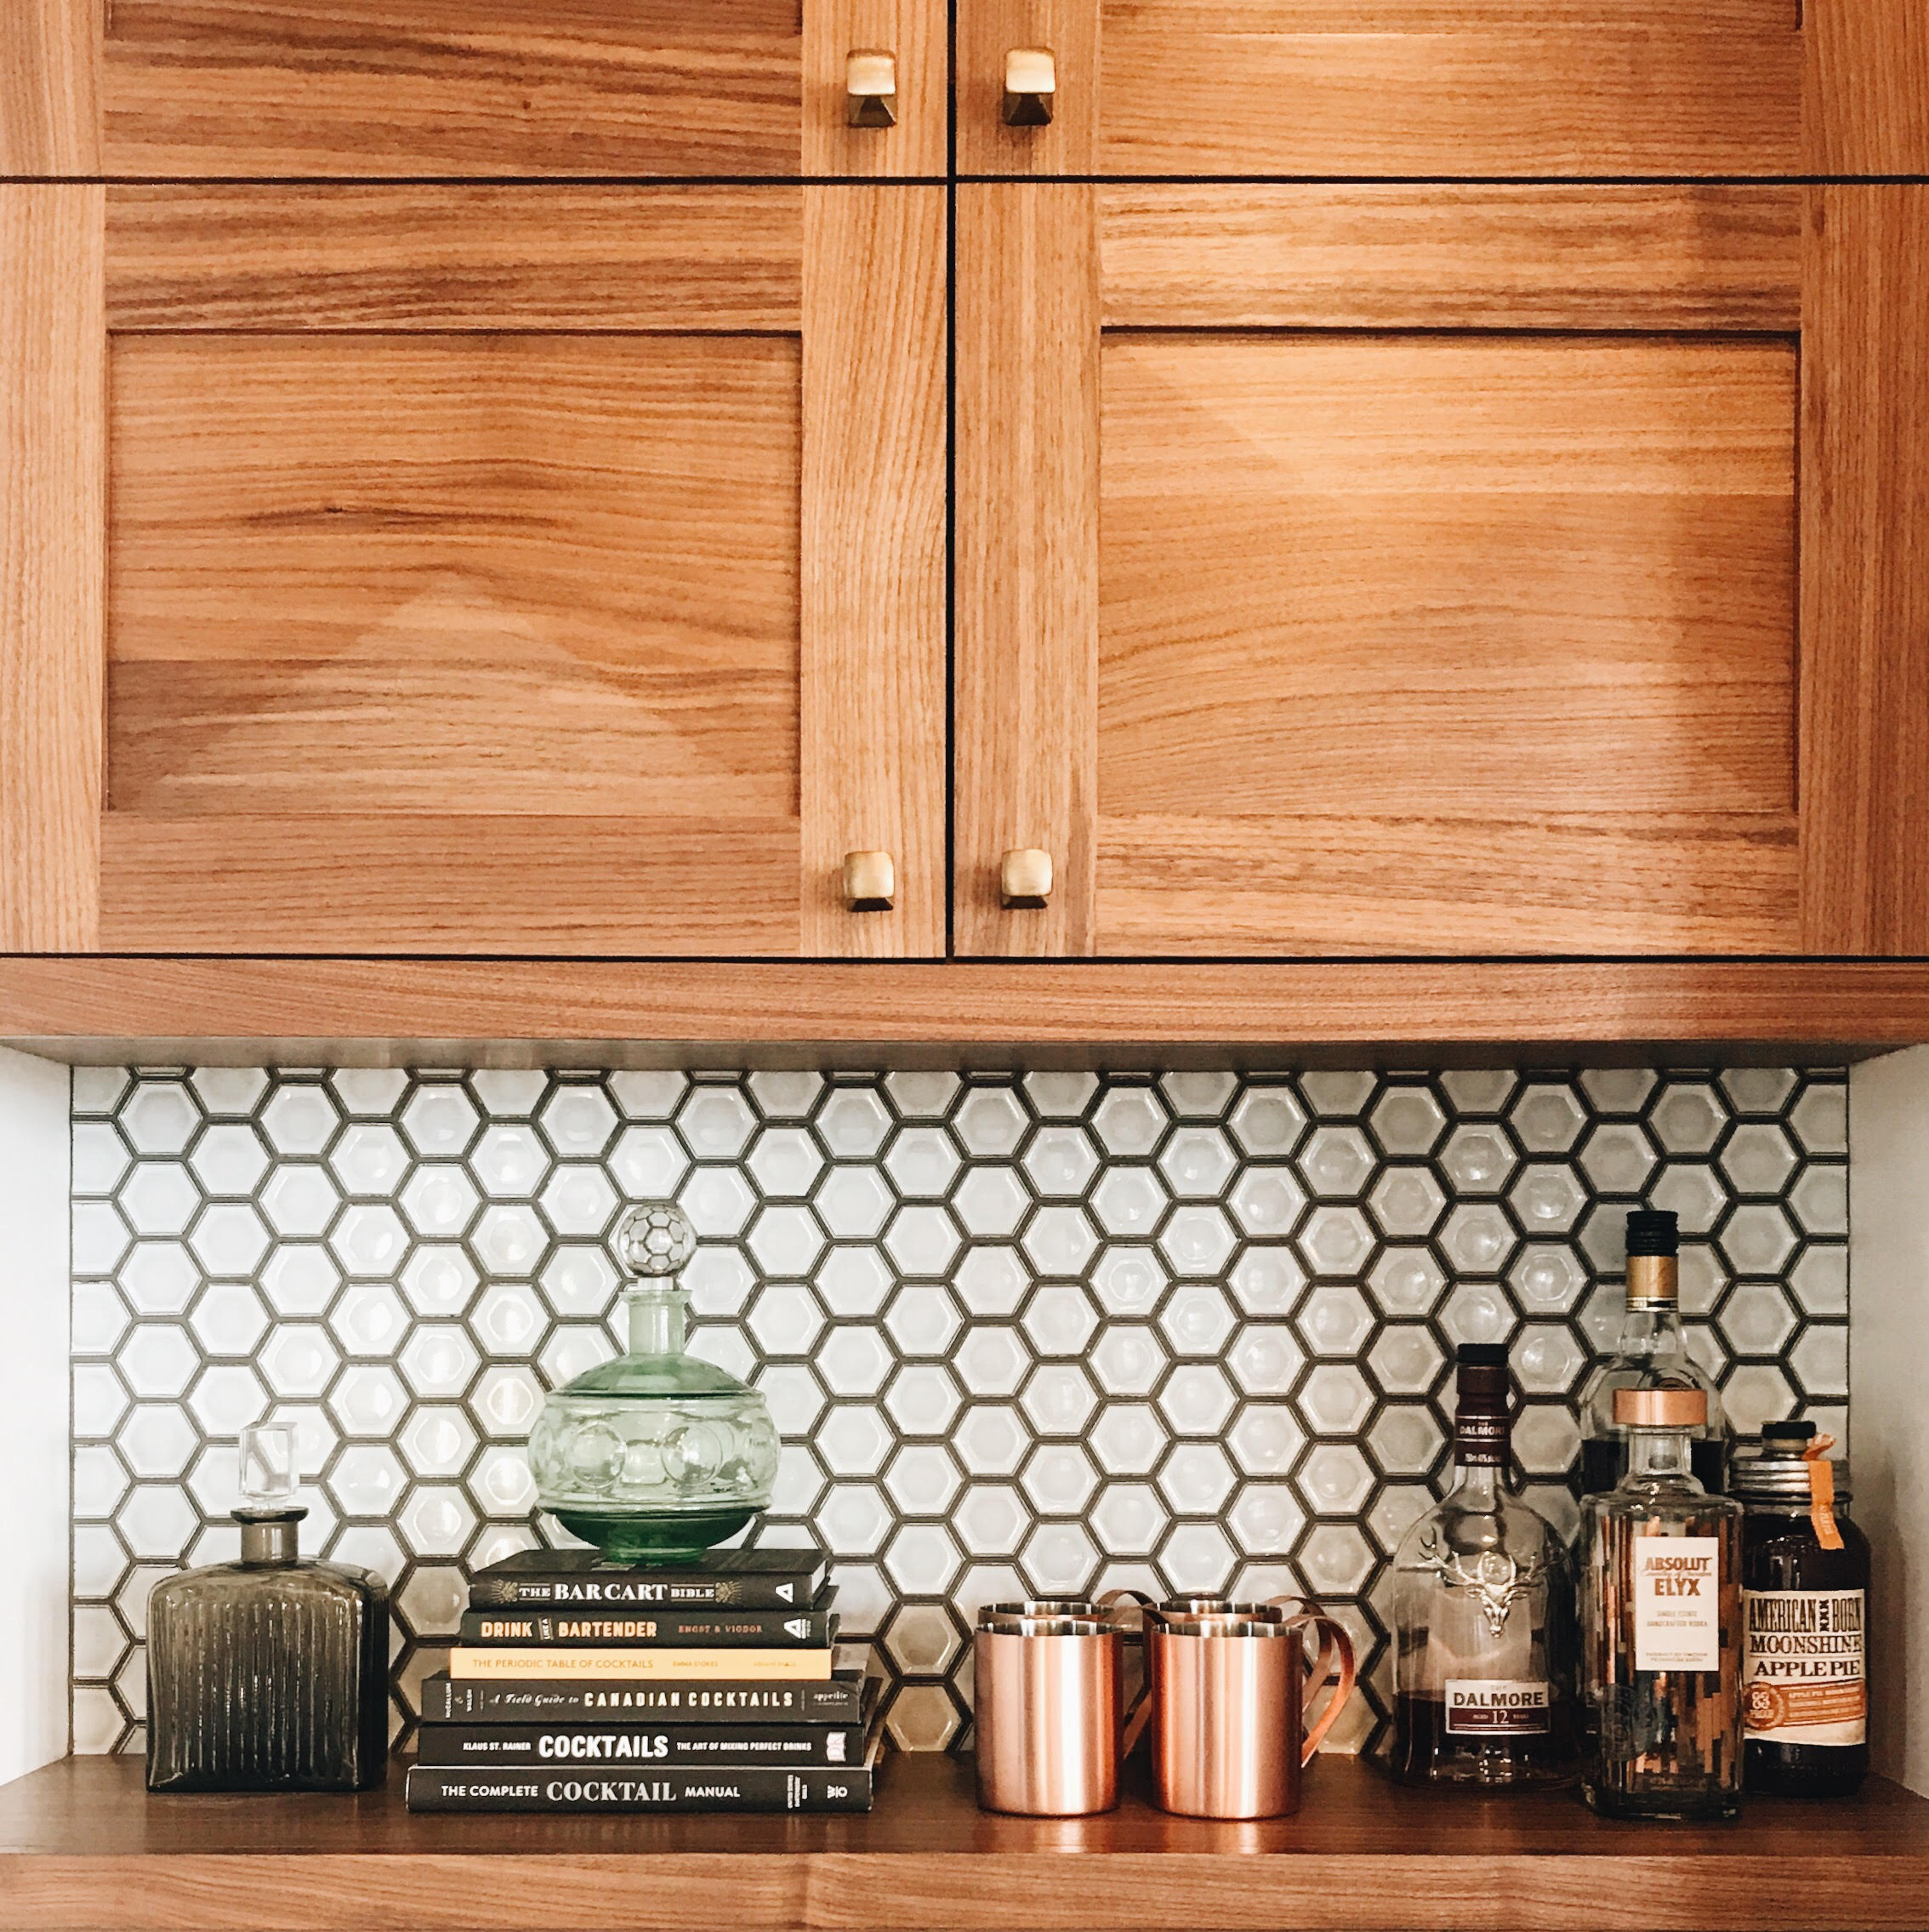 If you look really close, you might notice that even the knobs have a faceted detail to them!